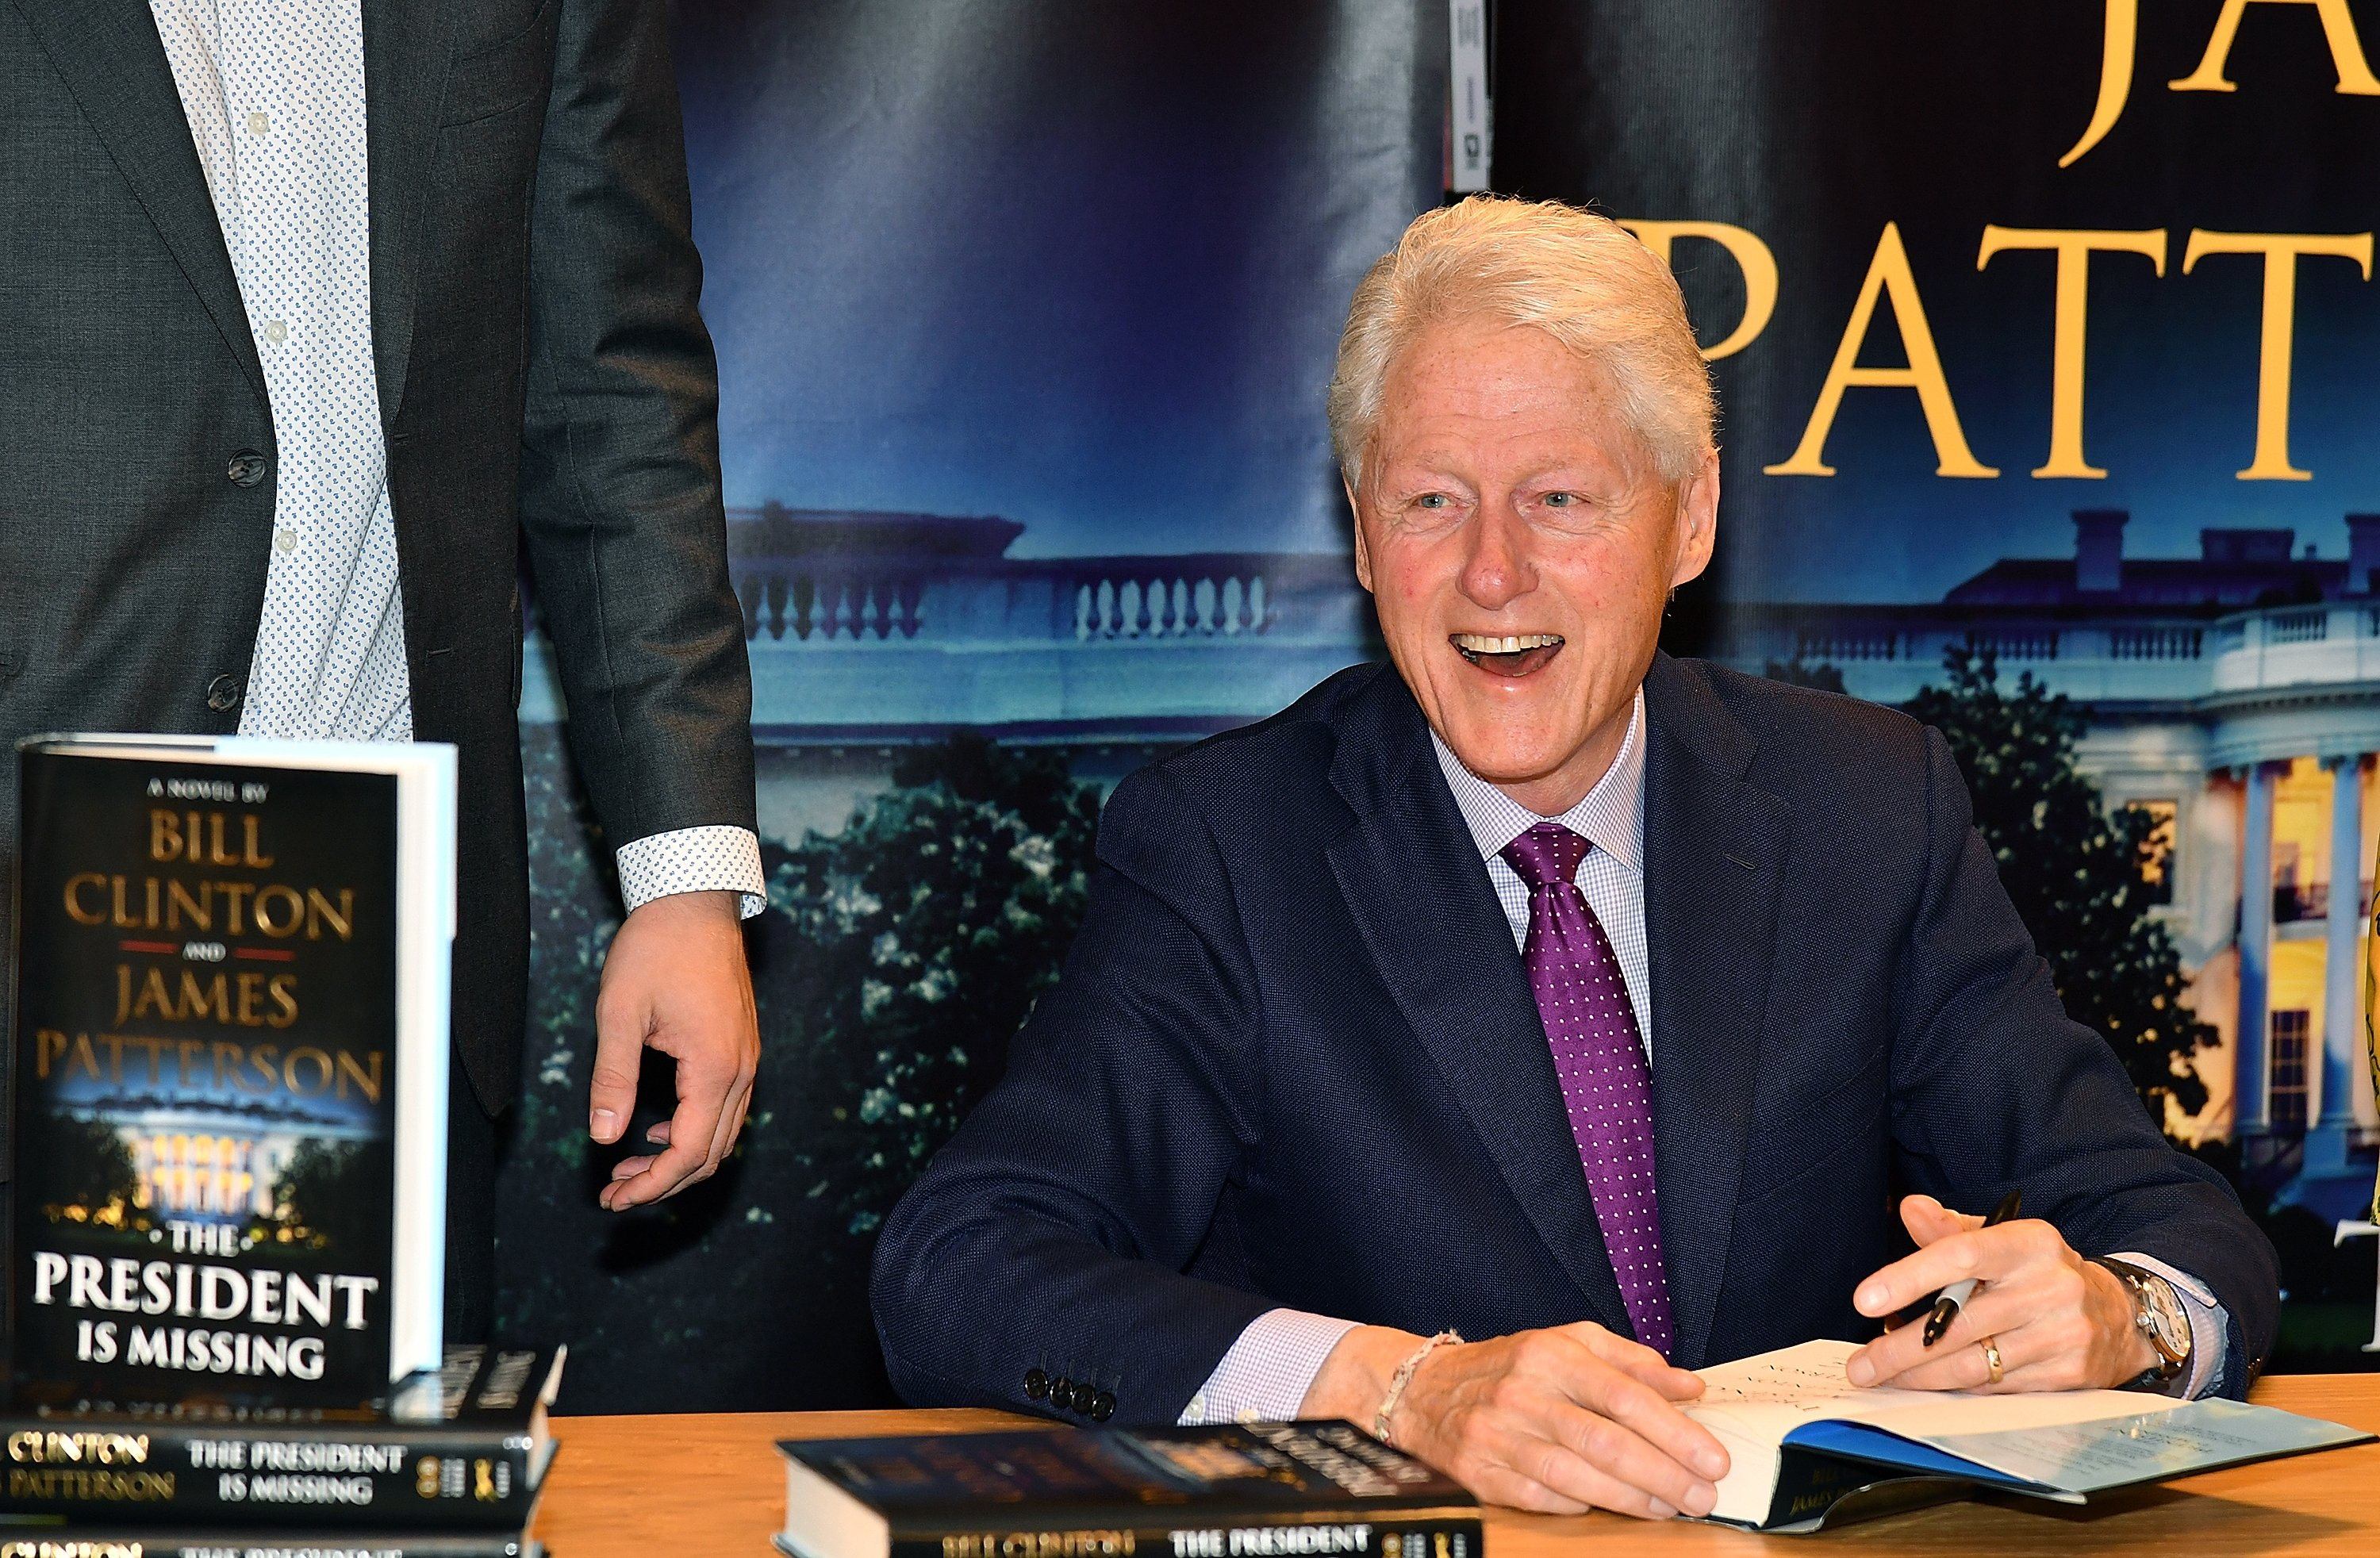 """Bill Clinton signs copies of his new book co-authored with James Patterson """"The President Is Missing"""" at Barnes & Noble on June 5, 2018 in New York City 